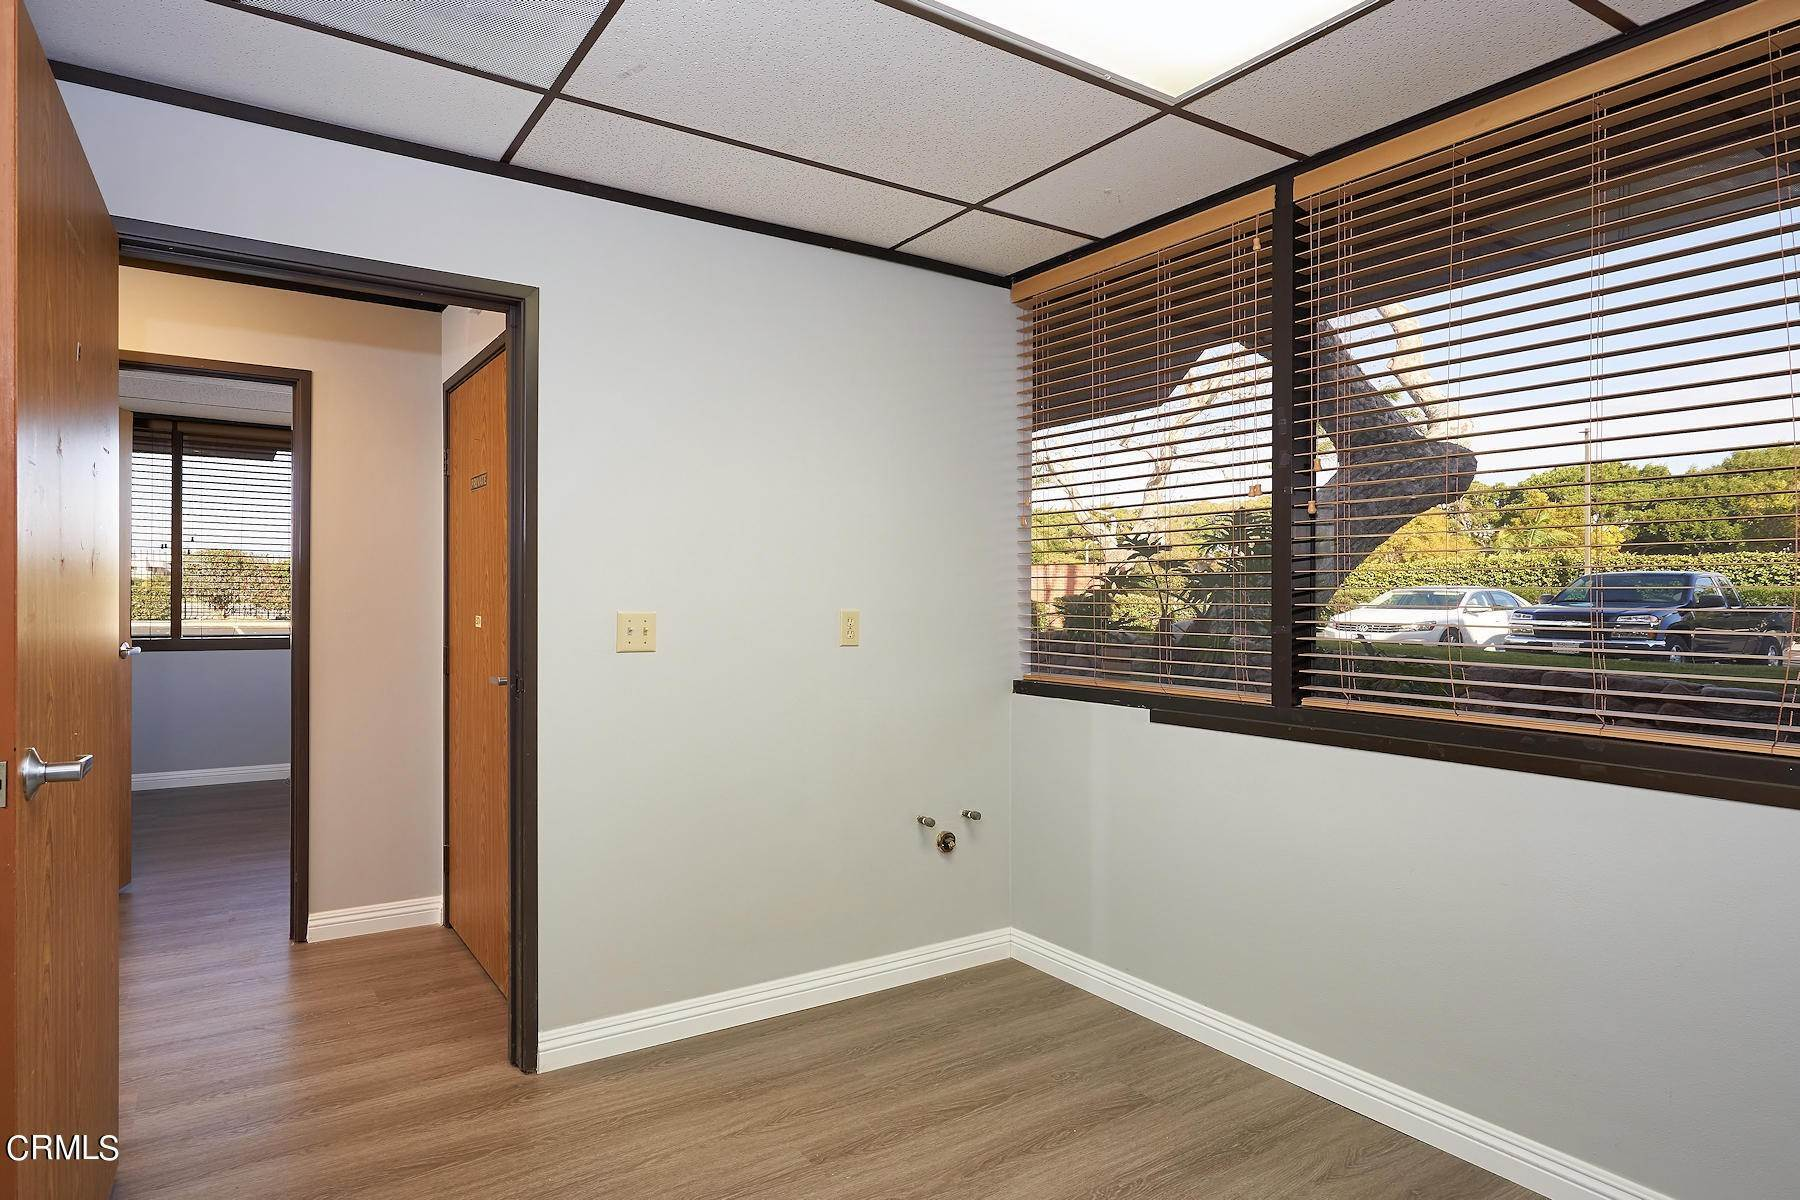 10. Offices for Sale at 921 West 7th Street Oxnard, California 93030 United States